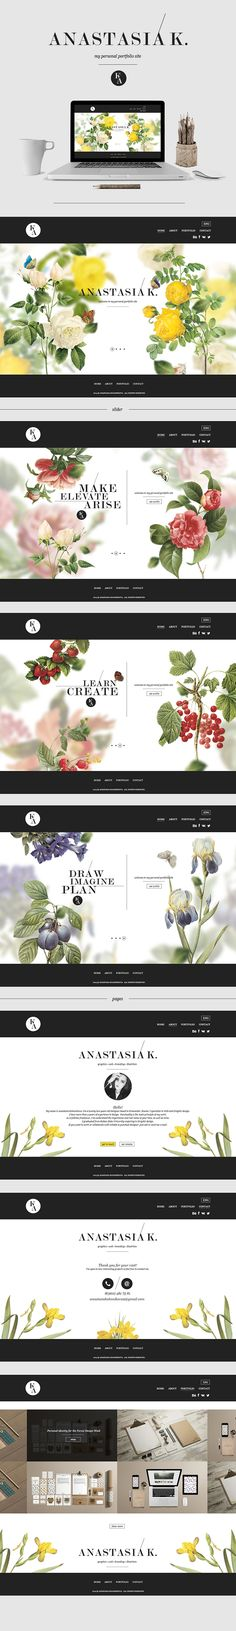 We love the look of these beautiful illustrations in this website design! #webdesign #design #illustrations